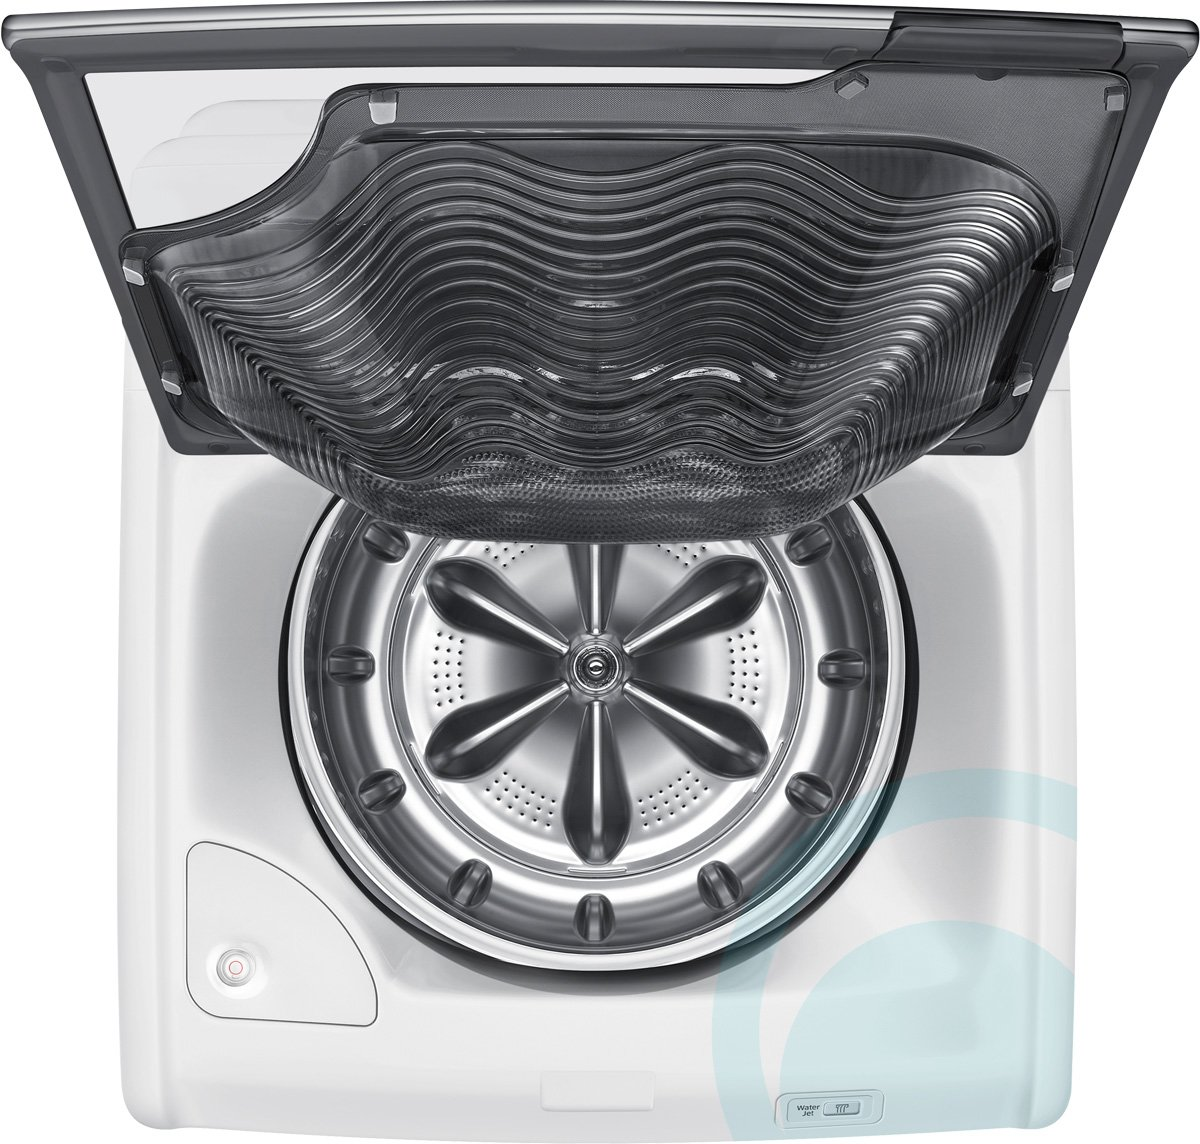 samsung 13kg washing machine